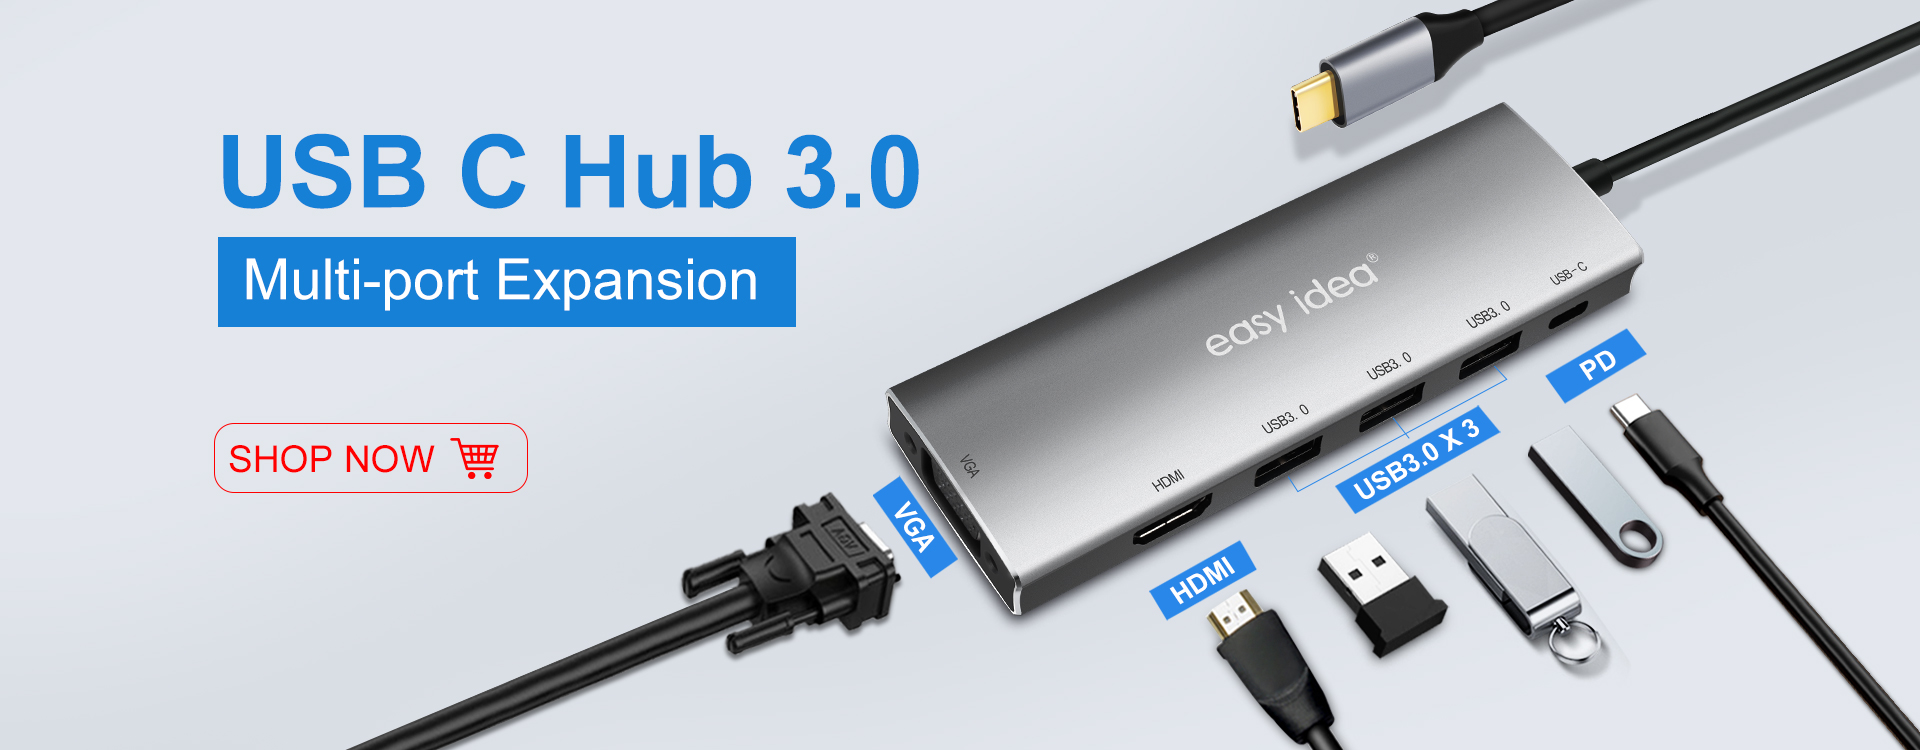 H3a498c7d2332483ea0003352ecb2d647s HDMI to VGA Adapter Male To Famale Converter for PS4 1080P HDMI-VGA Adapter With Video Audio Cable Jack HDMI VGA For PC TV Box